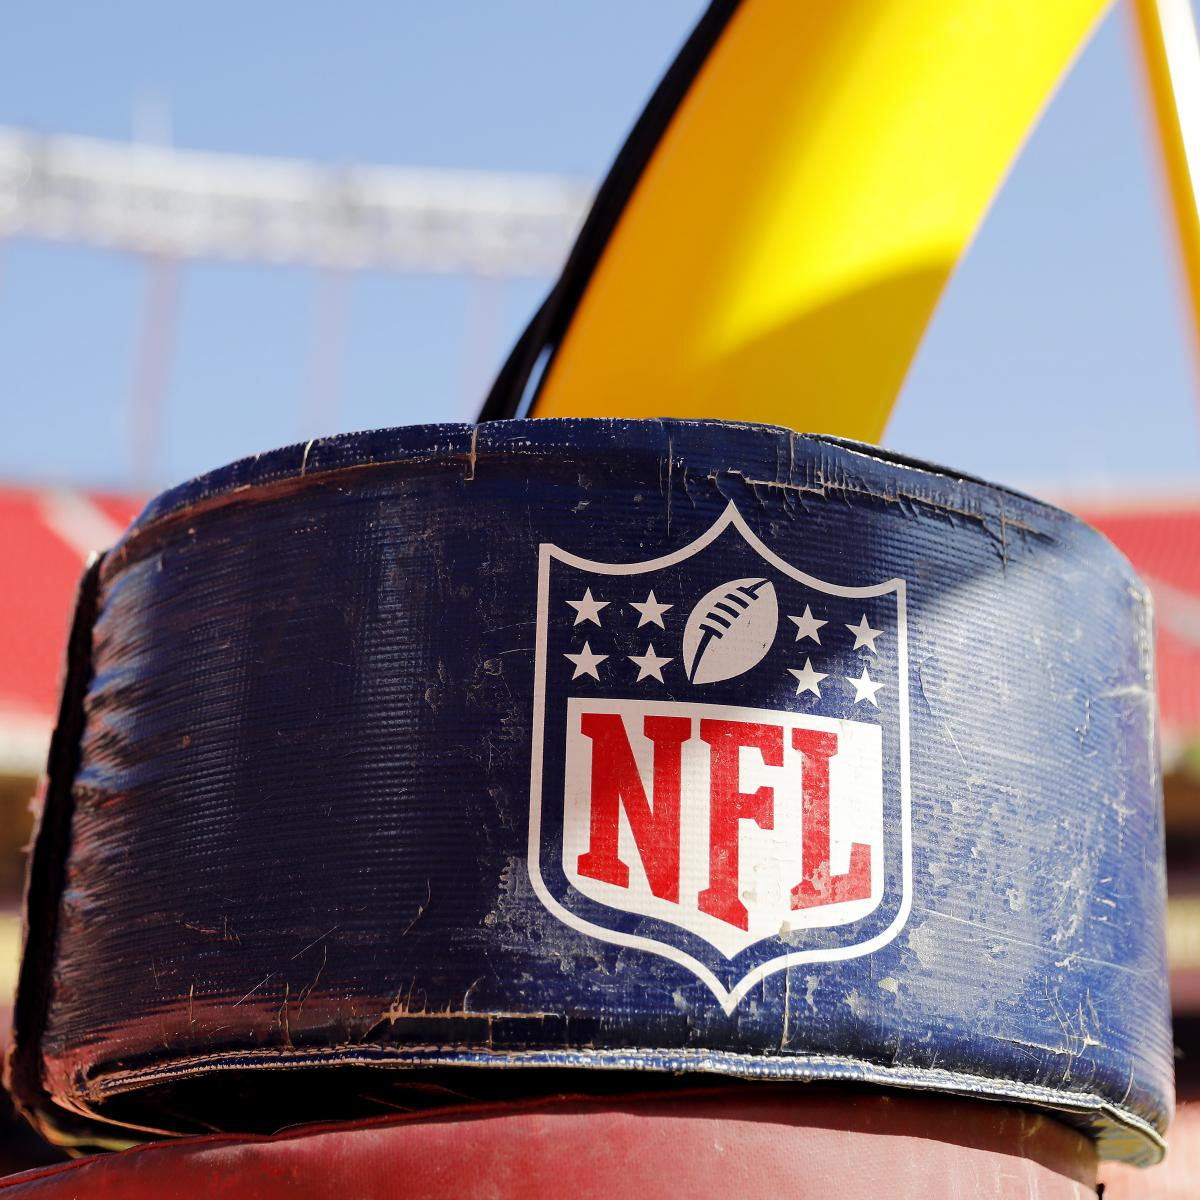 NFL Declines Comment After 4 Hours of CBA Negotiations with NFLPA